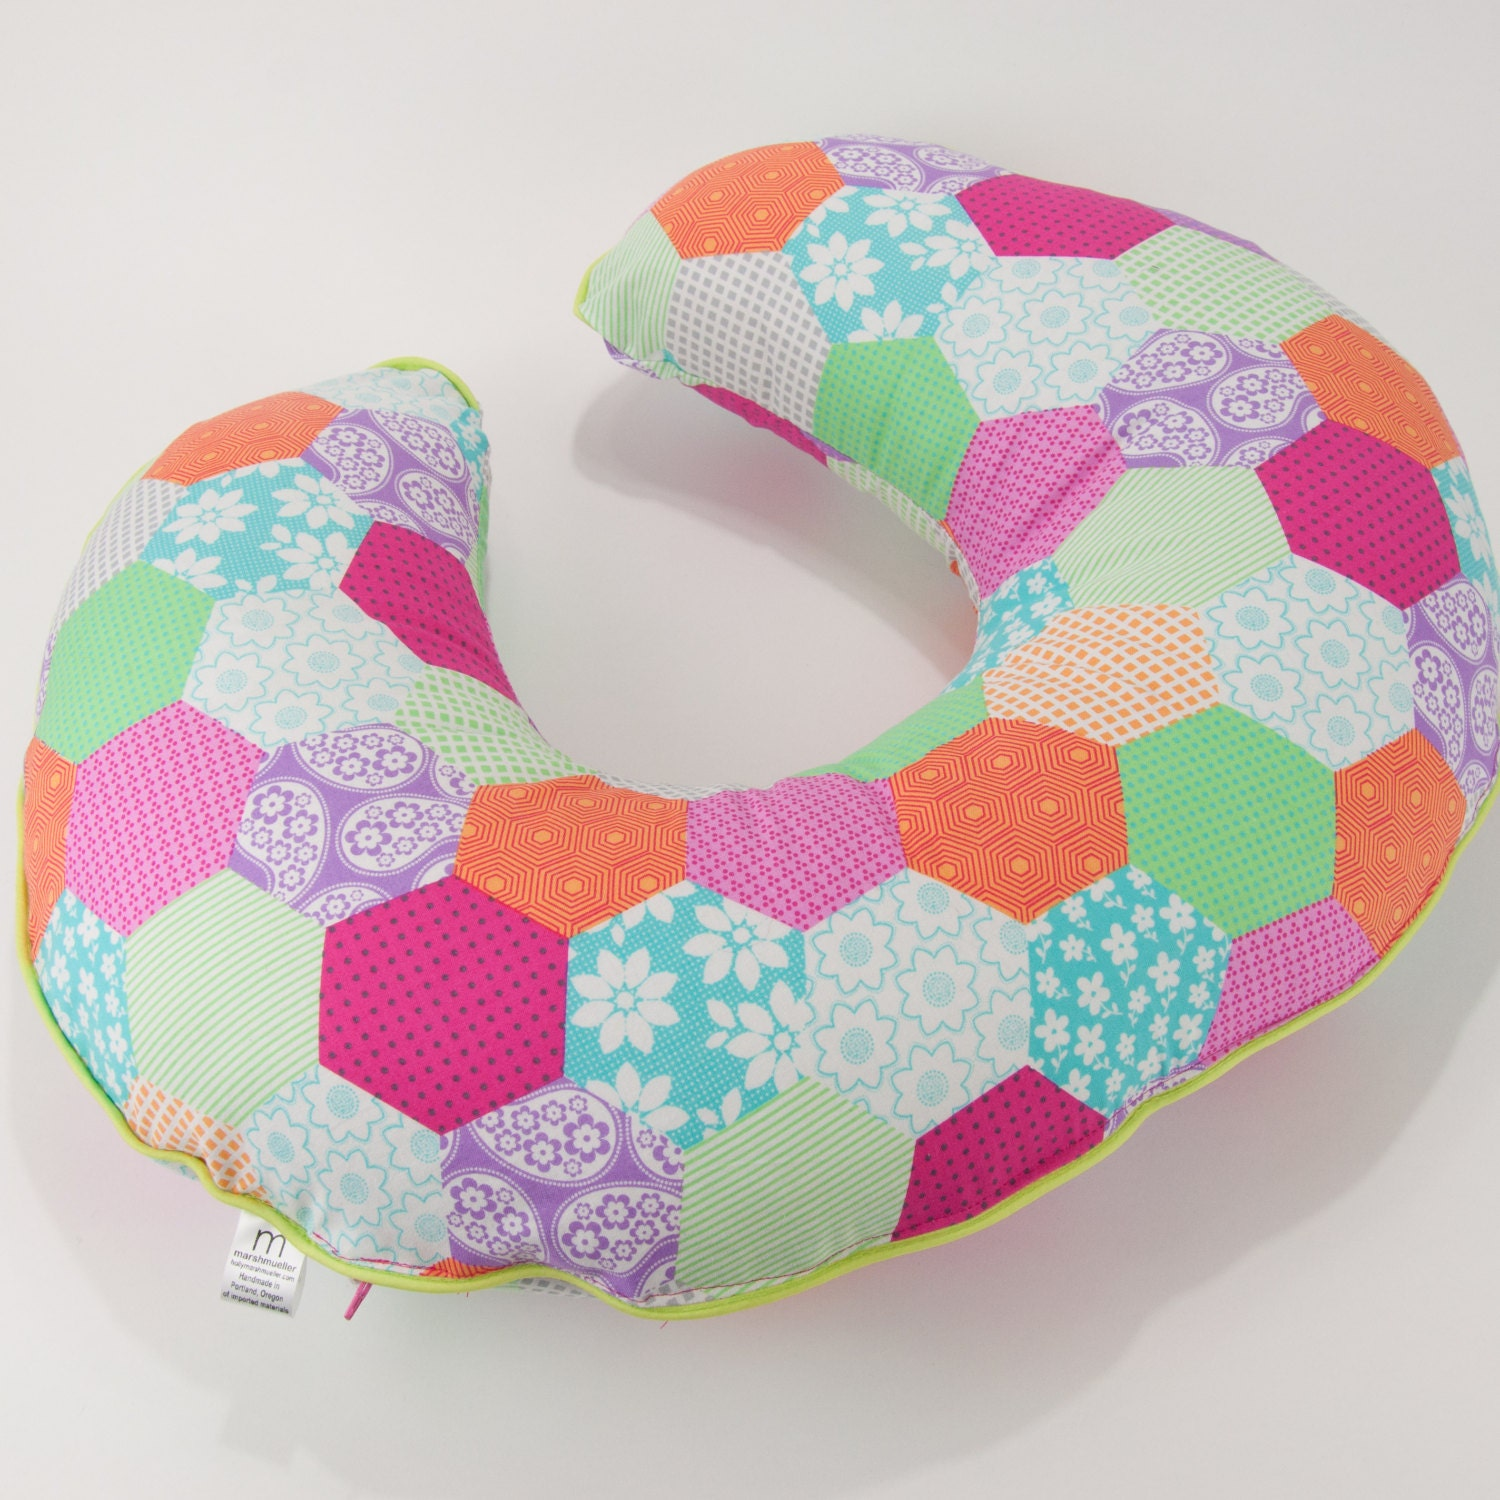 Cute Boppy Pillows : Boppy Cover in Michael Miller s Cute Patchwork Fabric